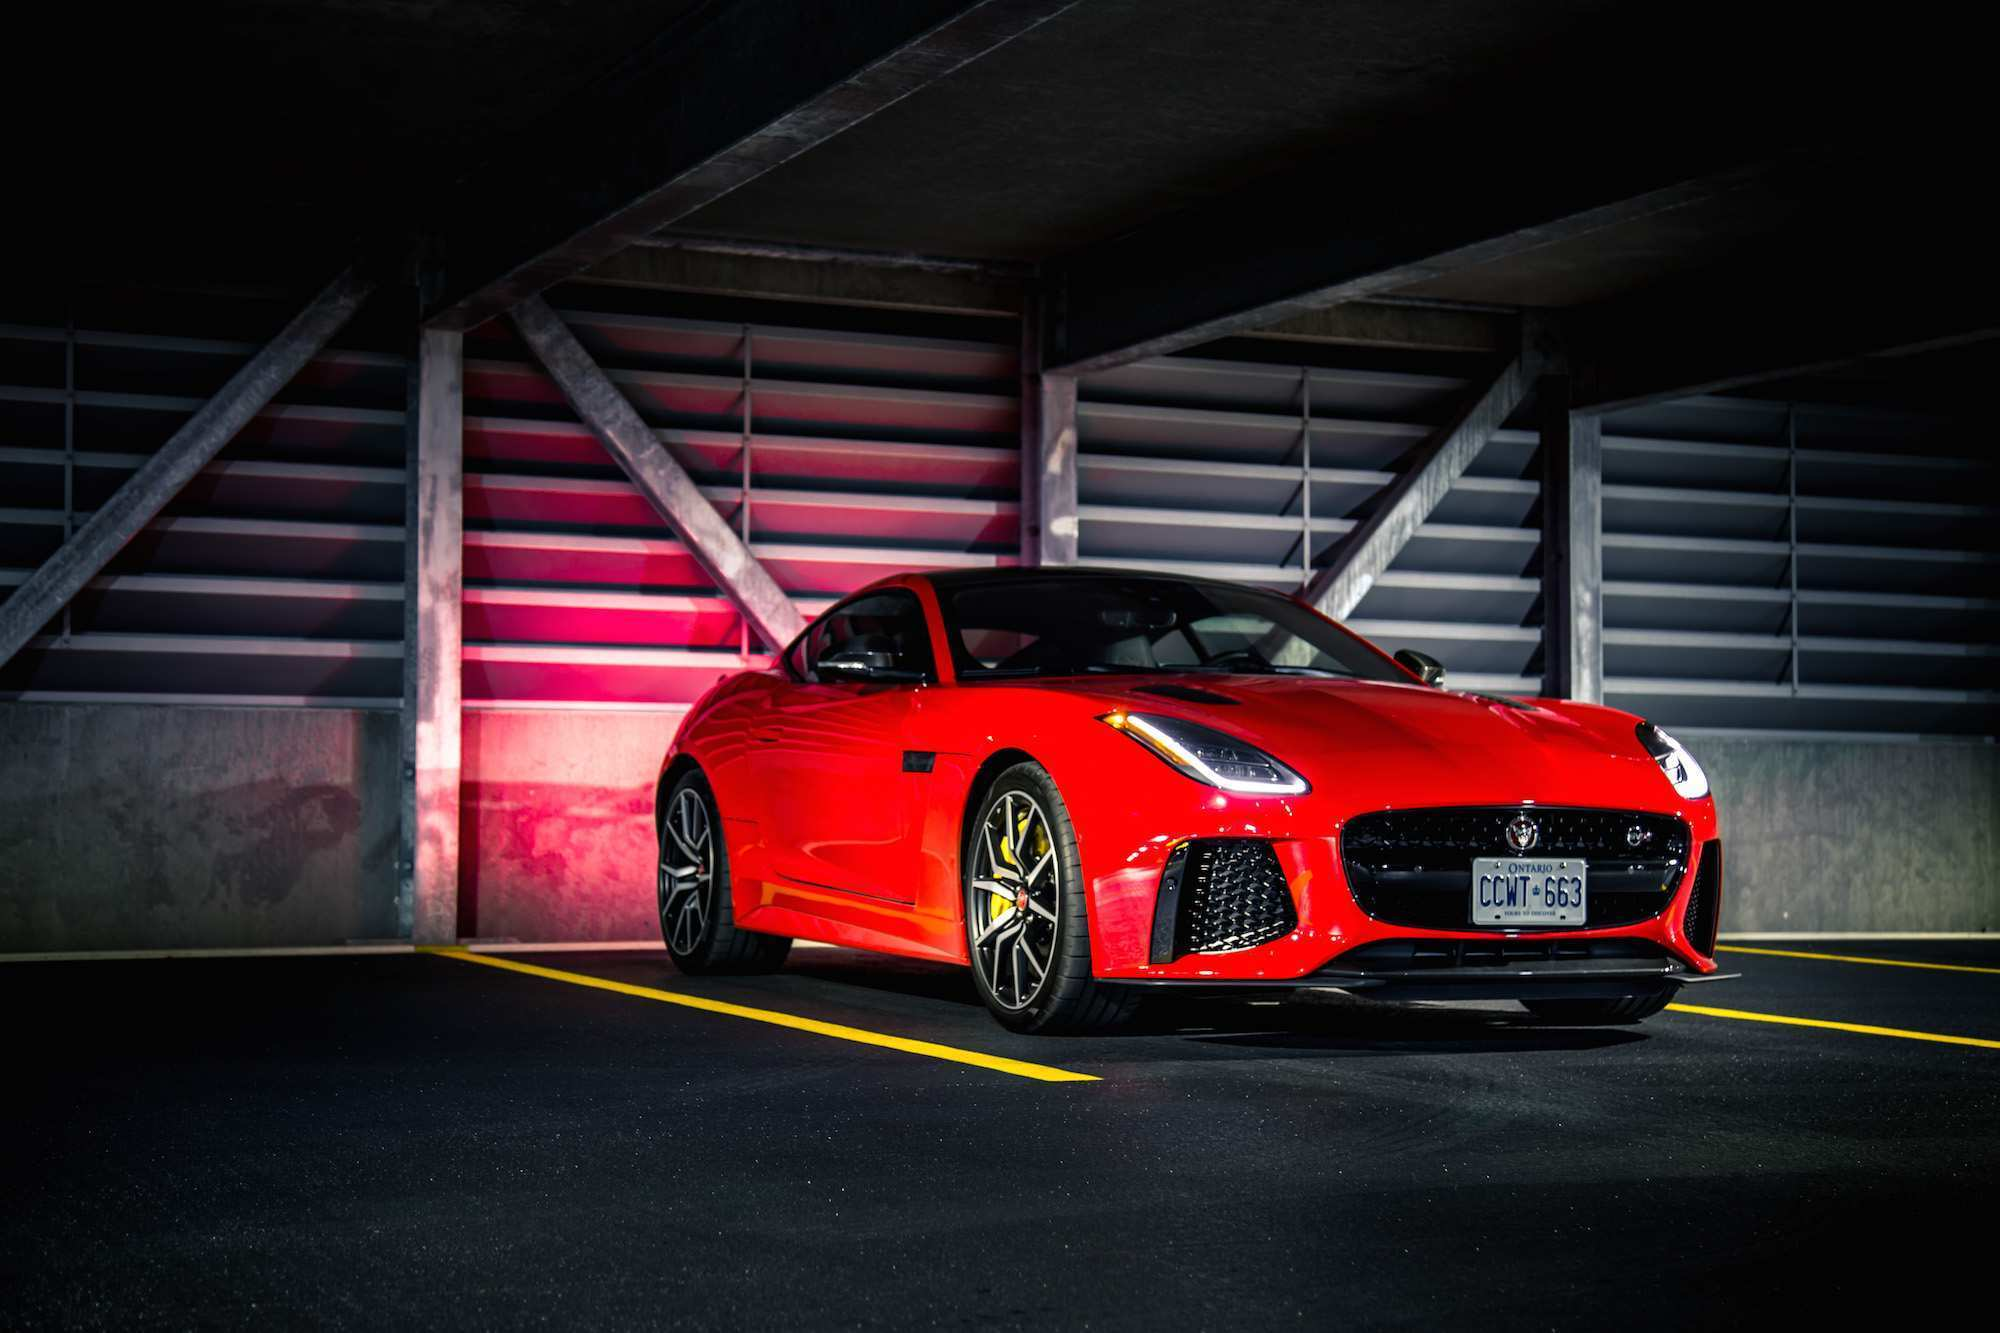 21 Concept of Jaguar F Type 2019 Review Exterior and Interior for Jaguar F Type 2019 Review